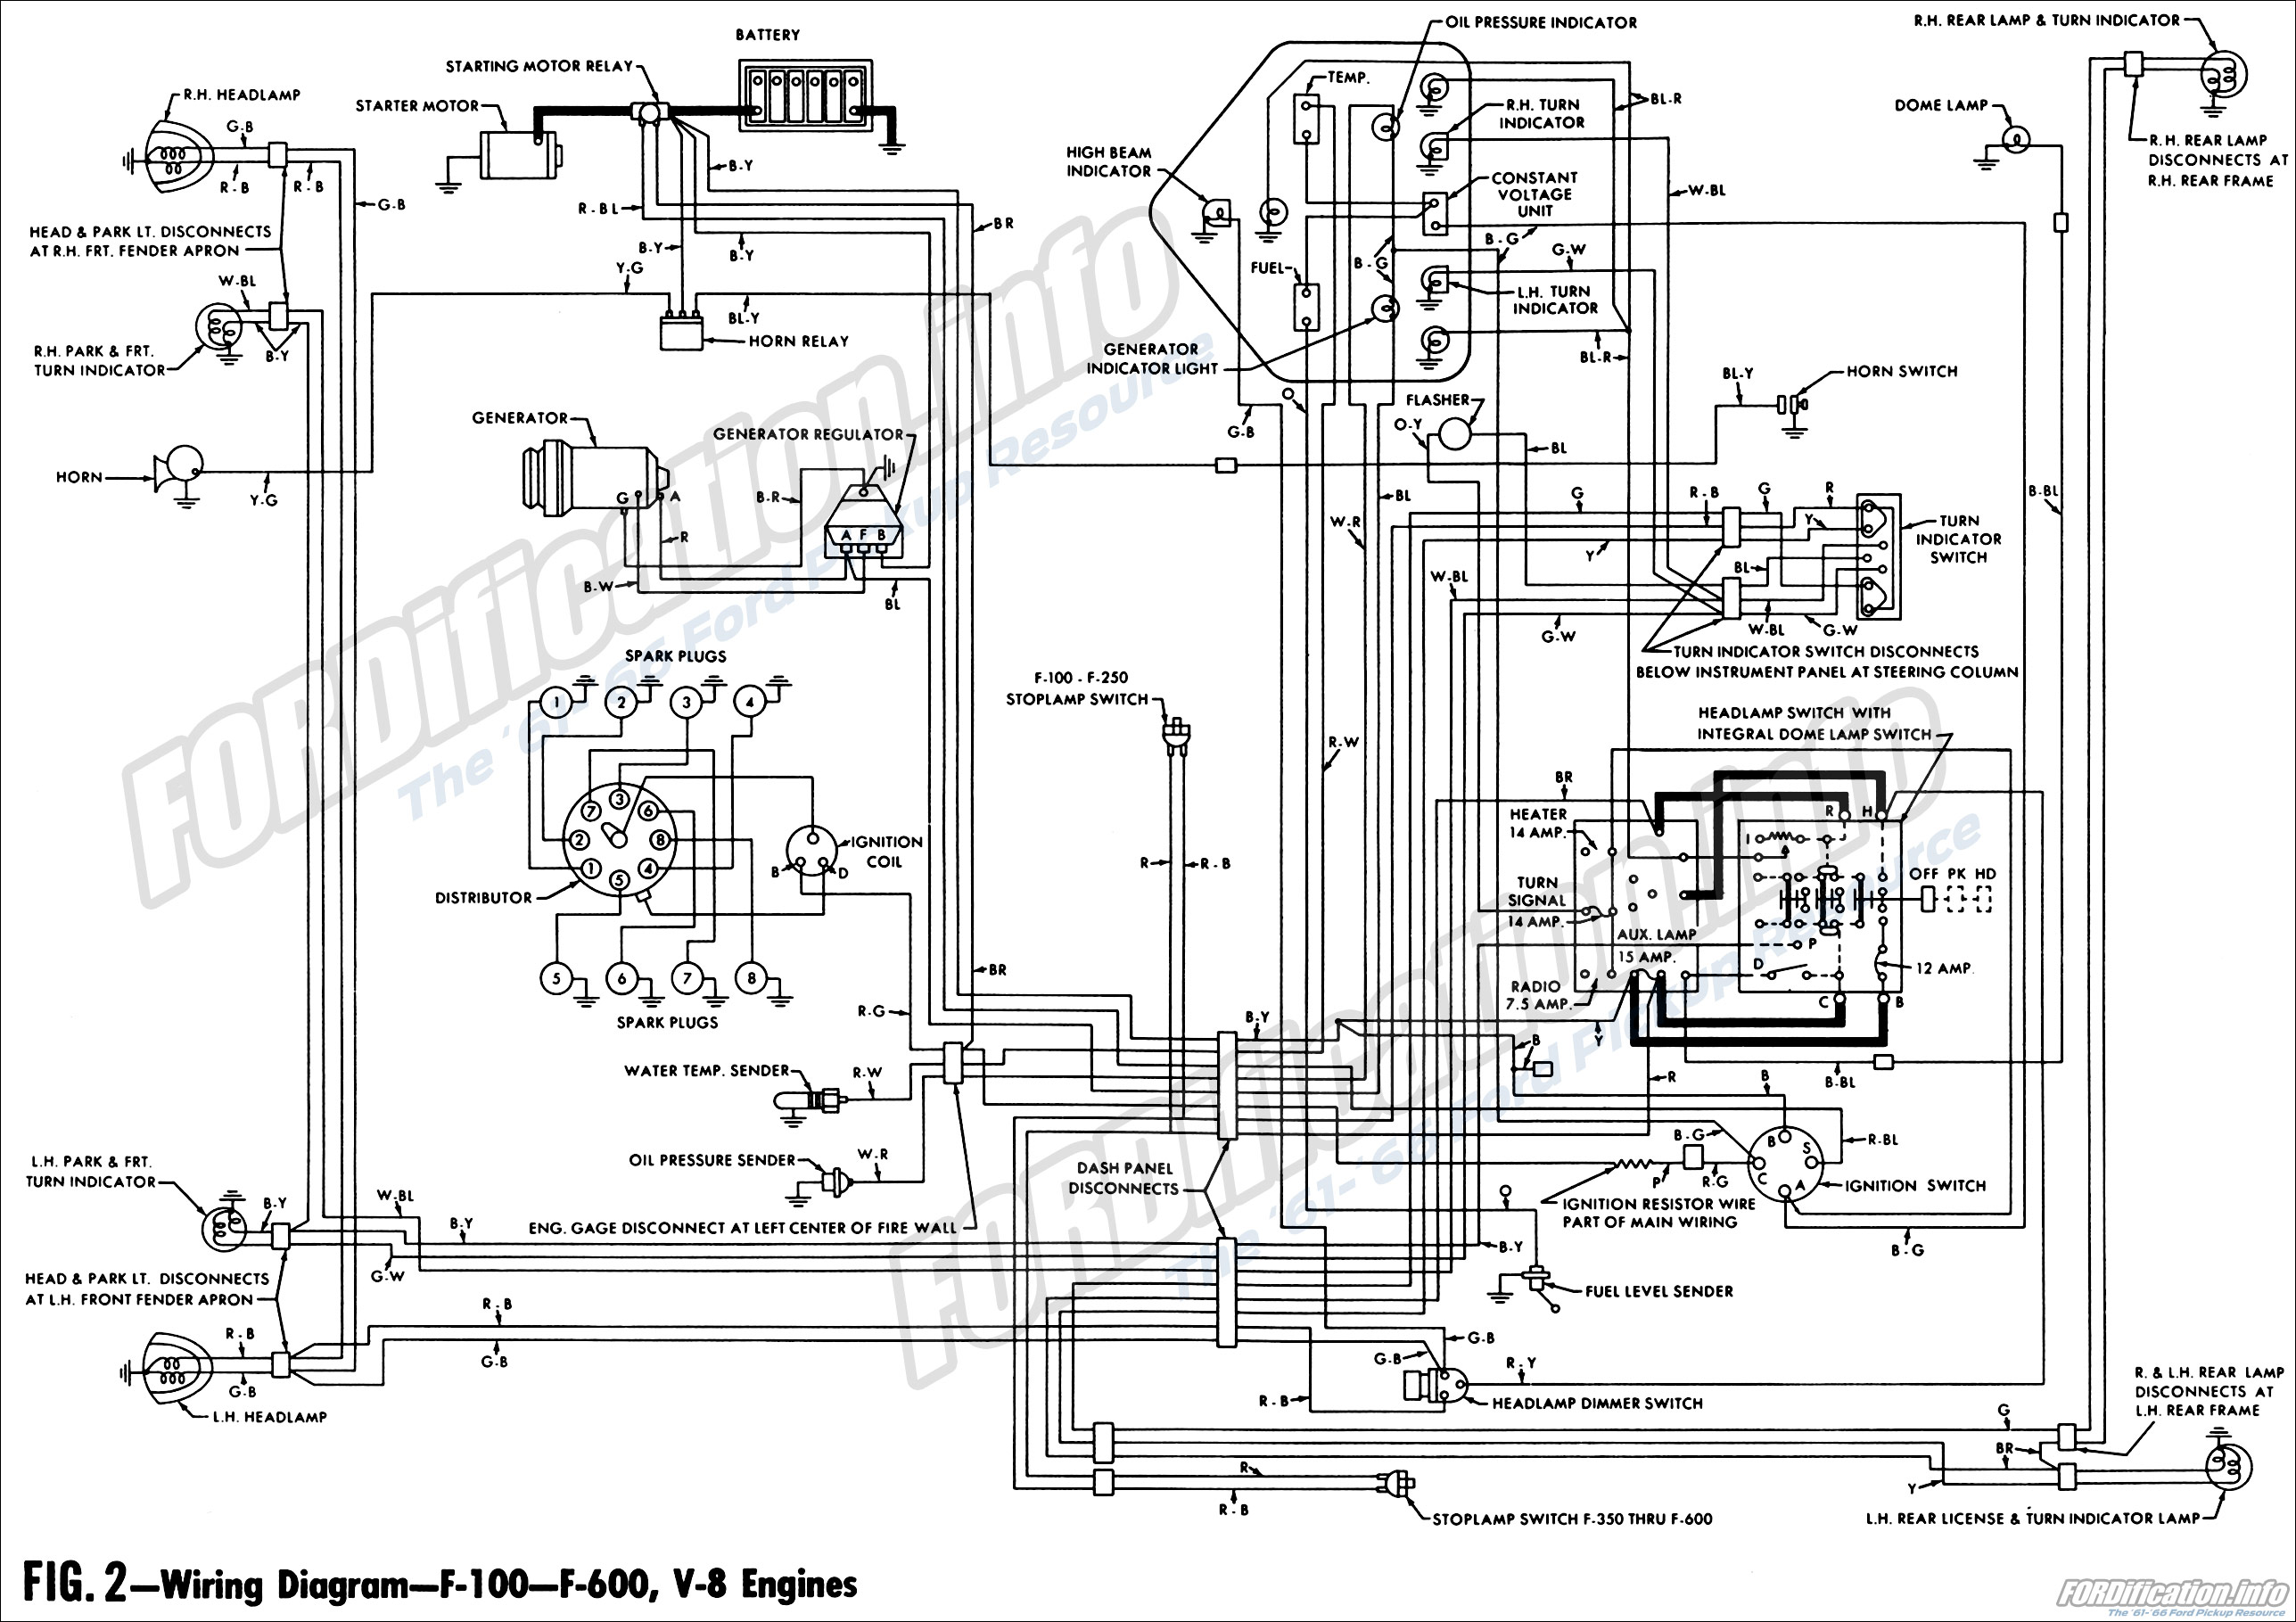 F800 Wire Diagram I Have A F 800 And Can Not Find A